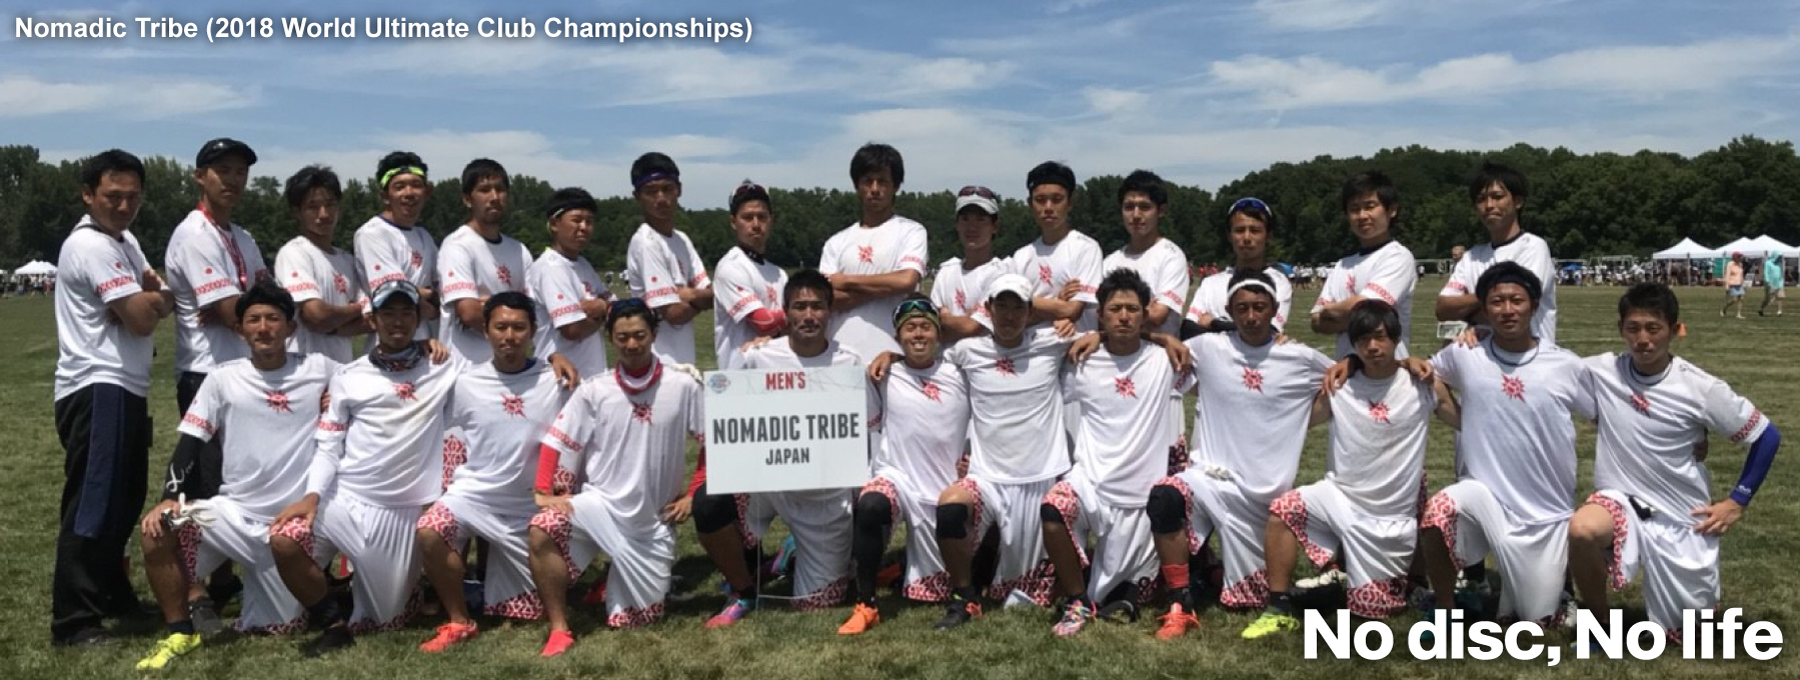 NomadicTribe (2018 World Ultimate Club Championships)